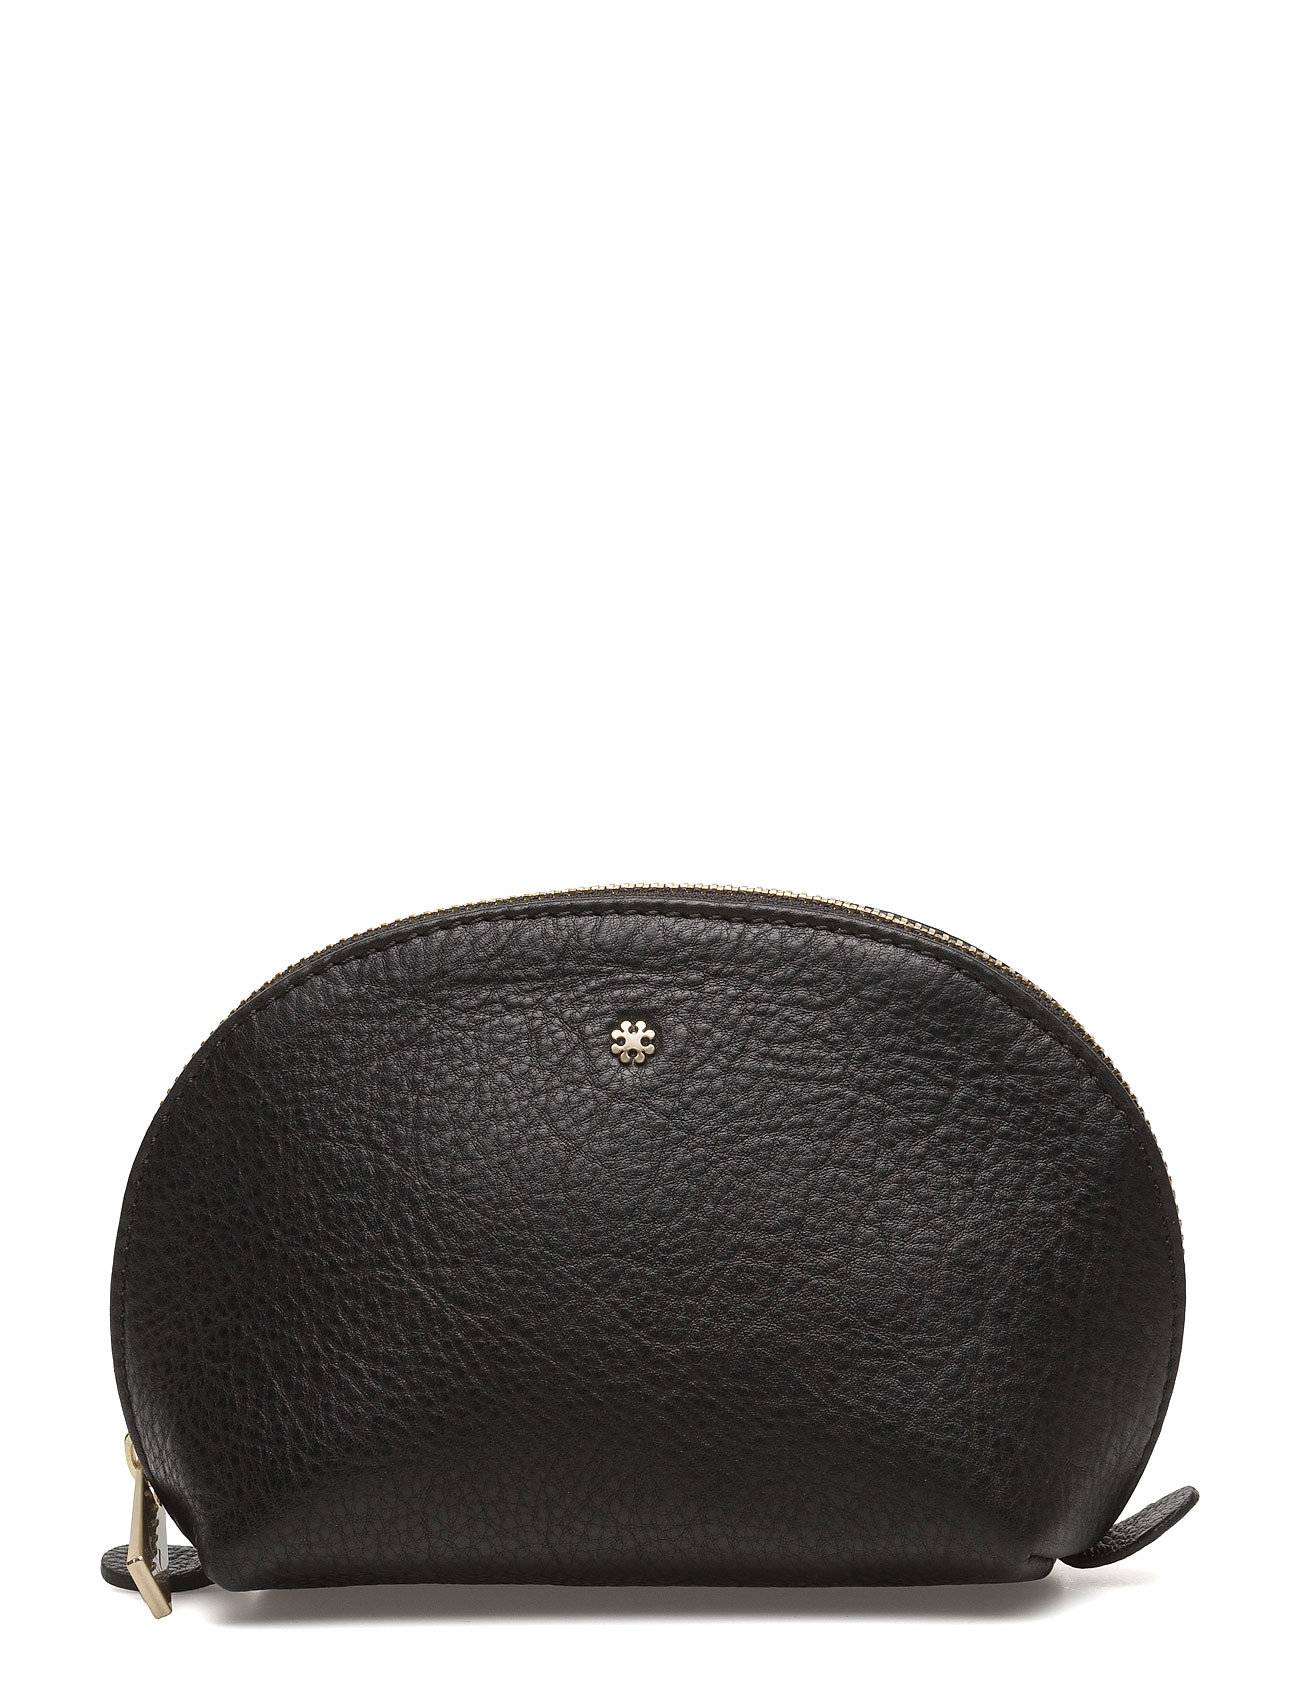 DAY et Day Sorrento Pochette Mini